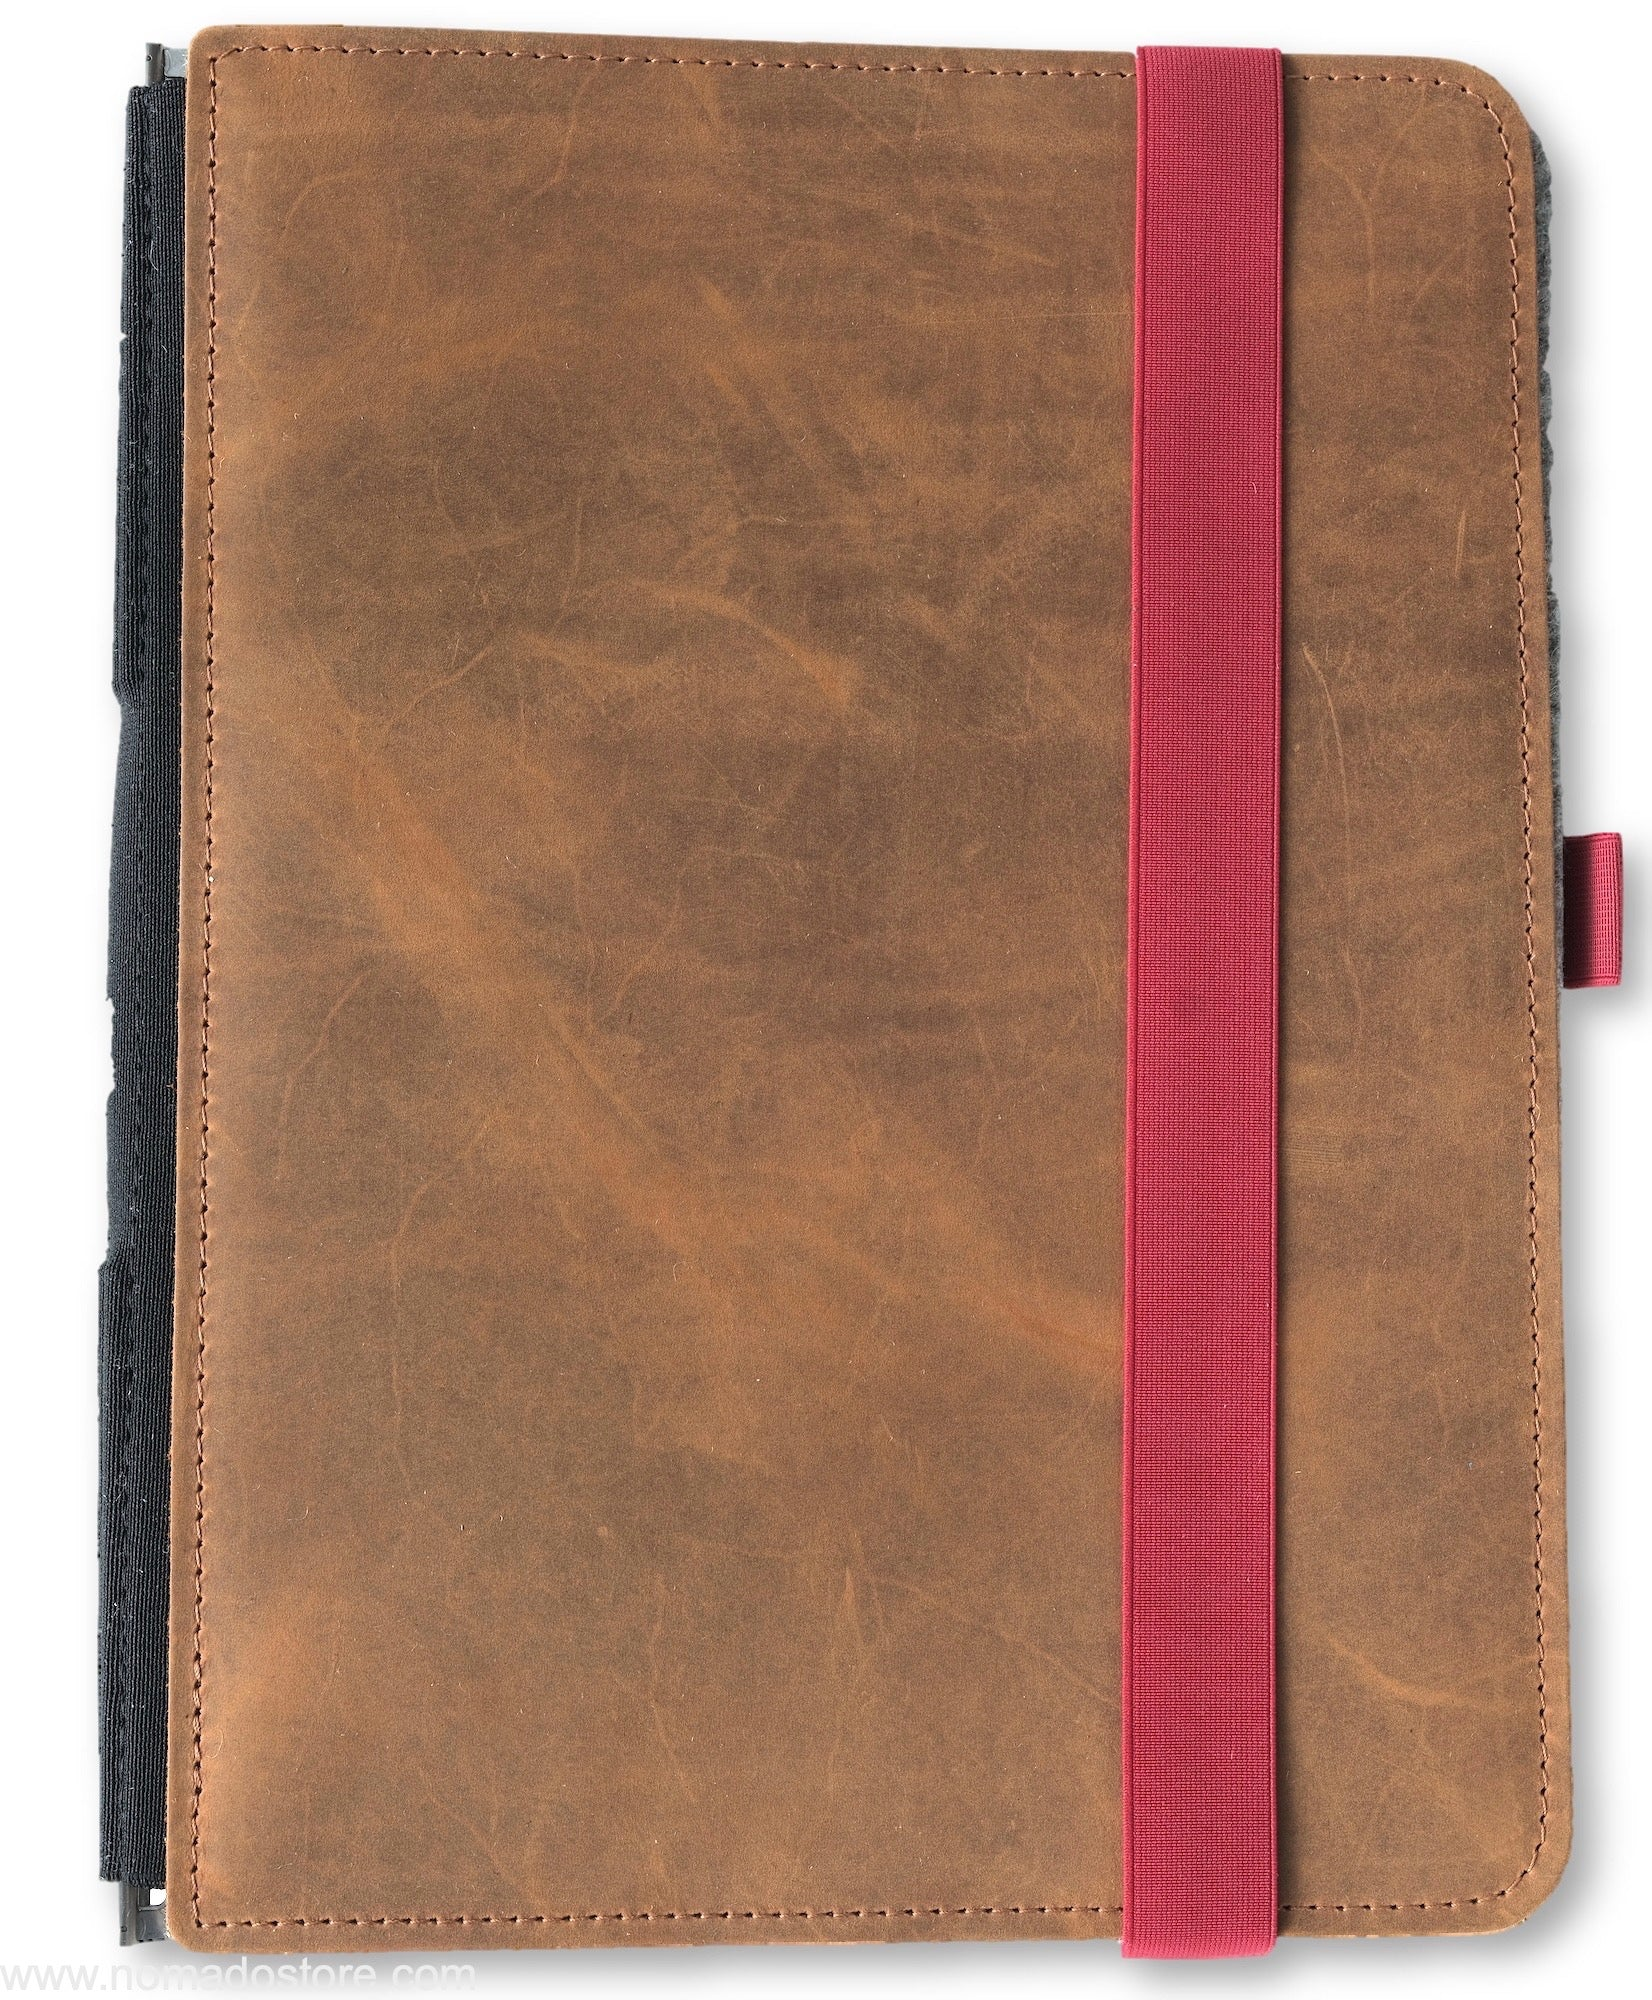 Roterfaden Taschenbegleiter (red/light brown) Generous A4 - NOMADO Store